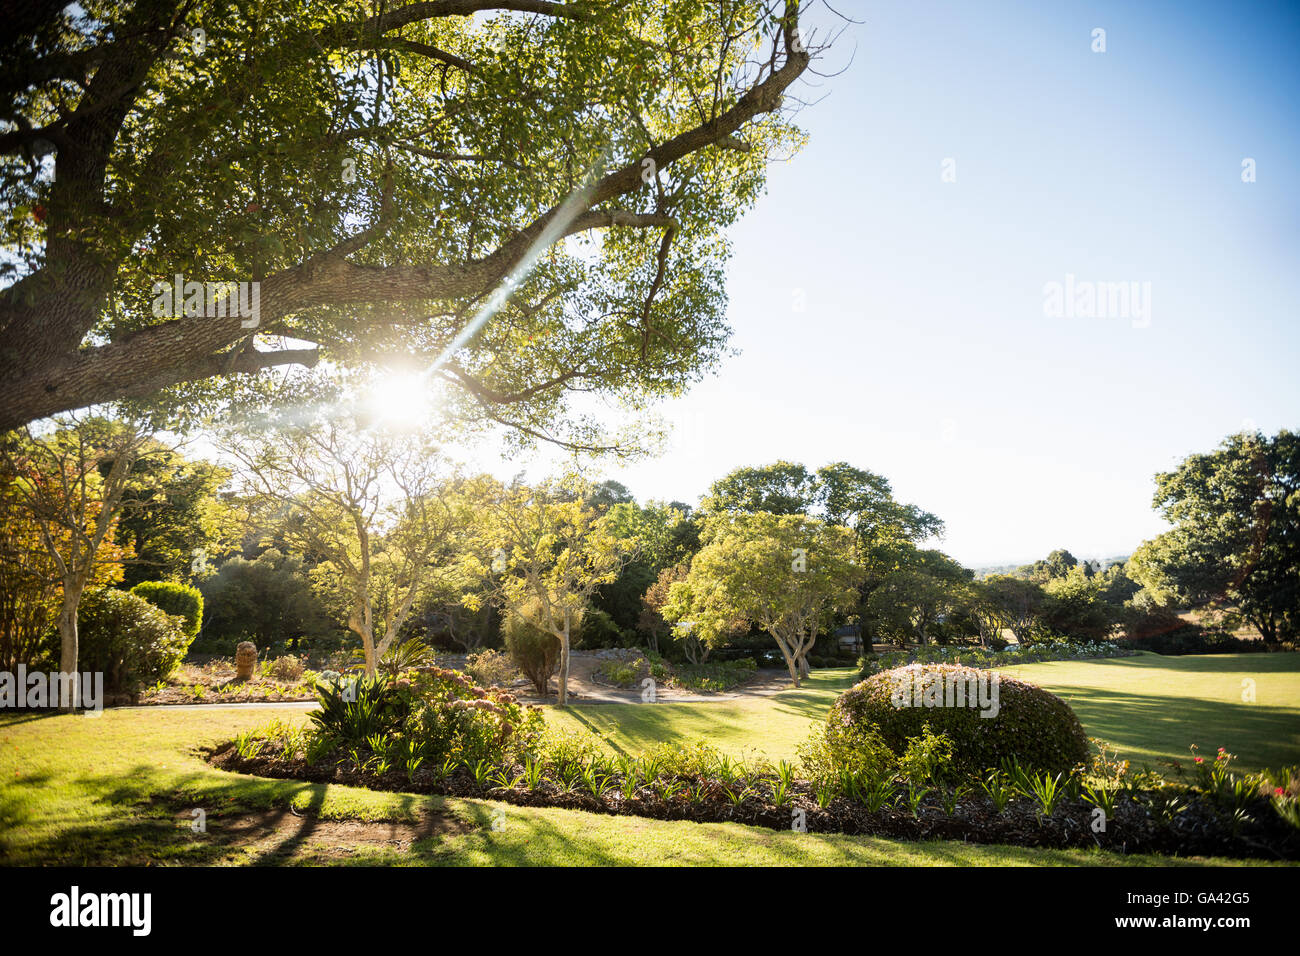 Picture of park with trees without people - Stock Image